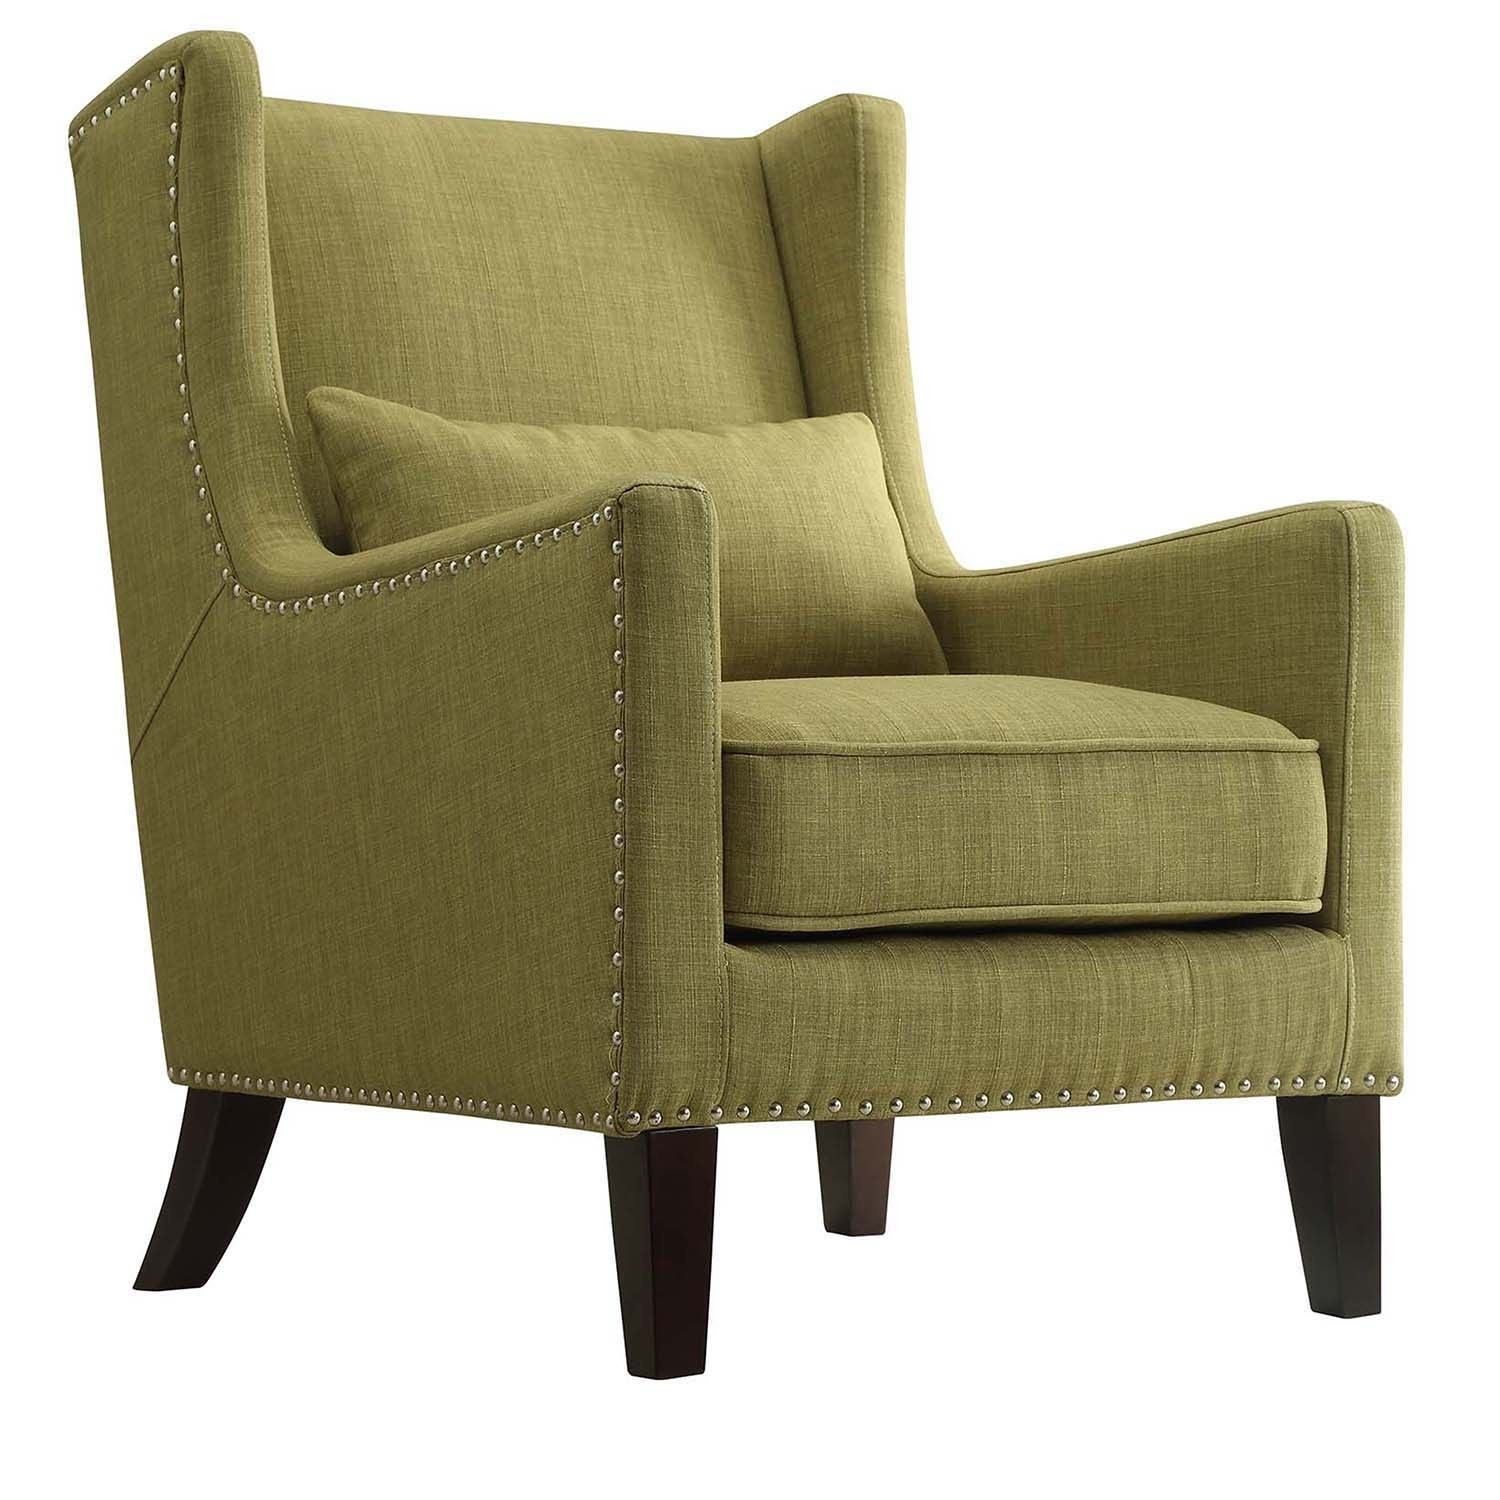 Henry Wingback Nailhead Upholstered Club Chair with Pillow by Tribecca Home  (Chartreuse), Green (Linen)